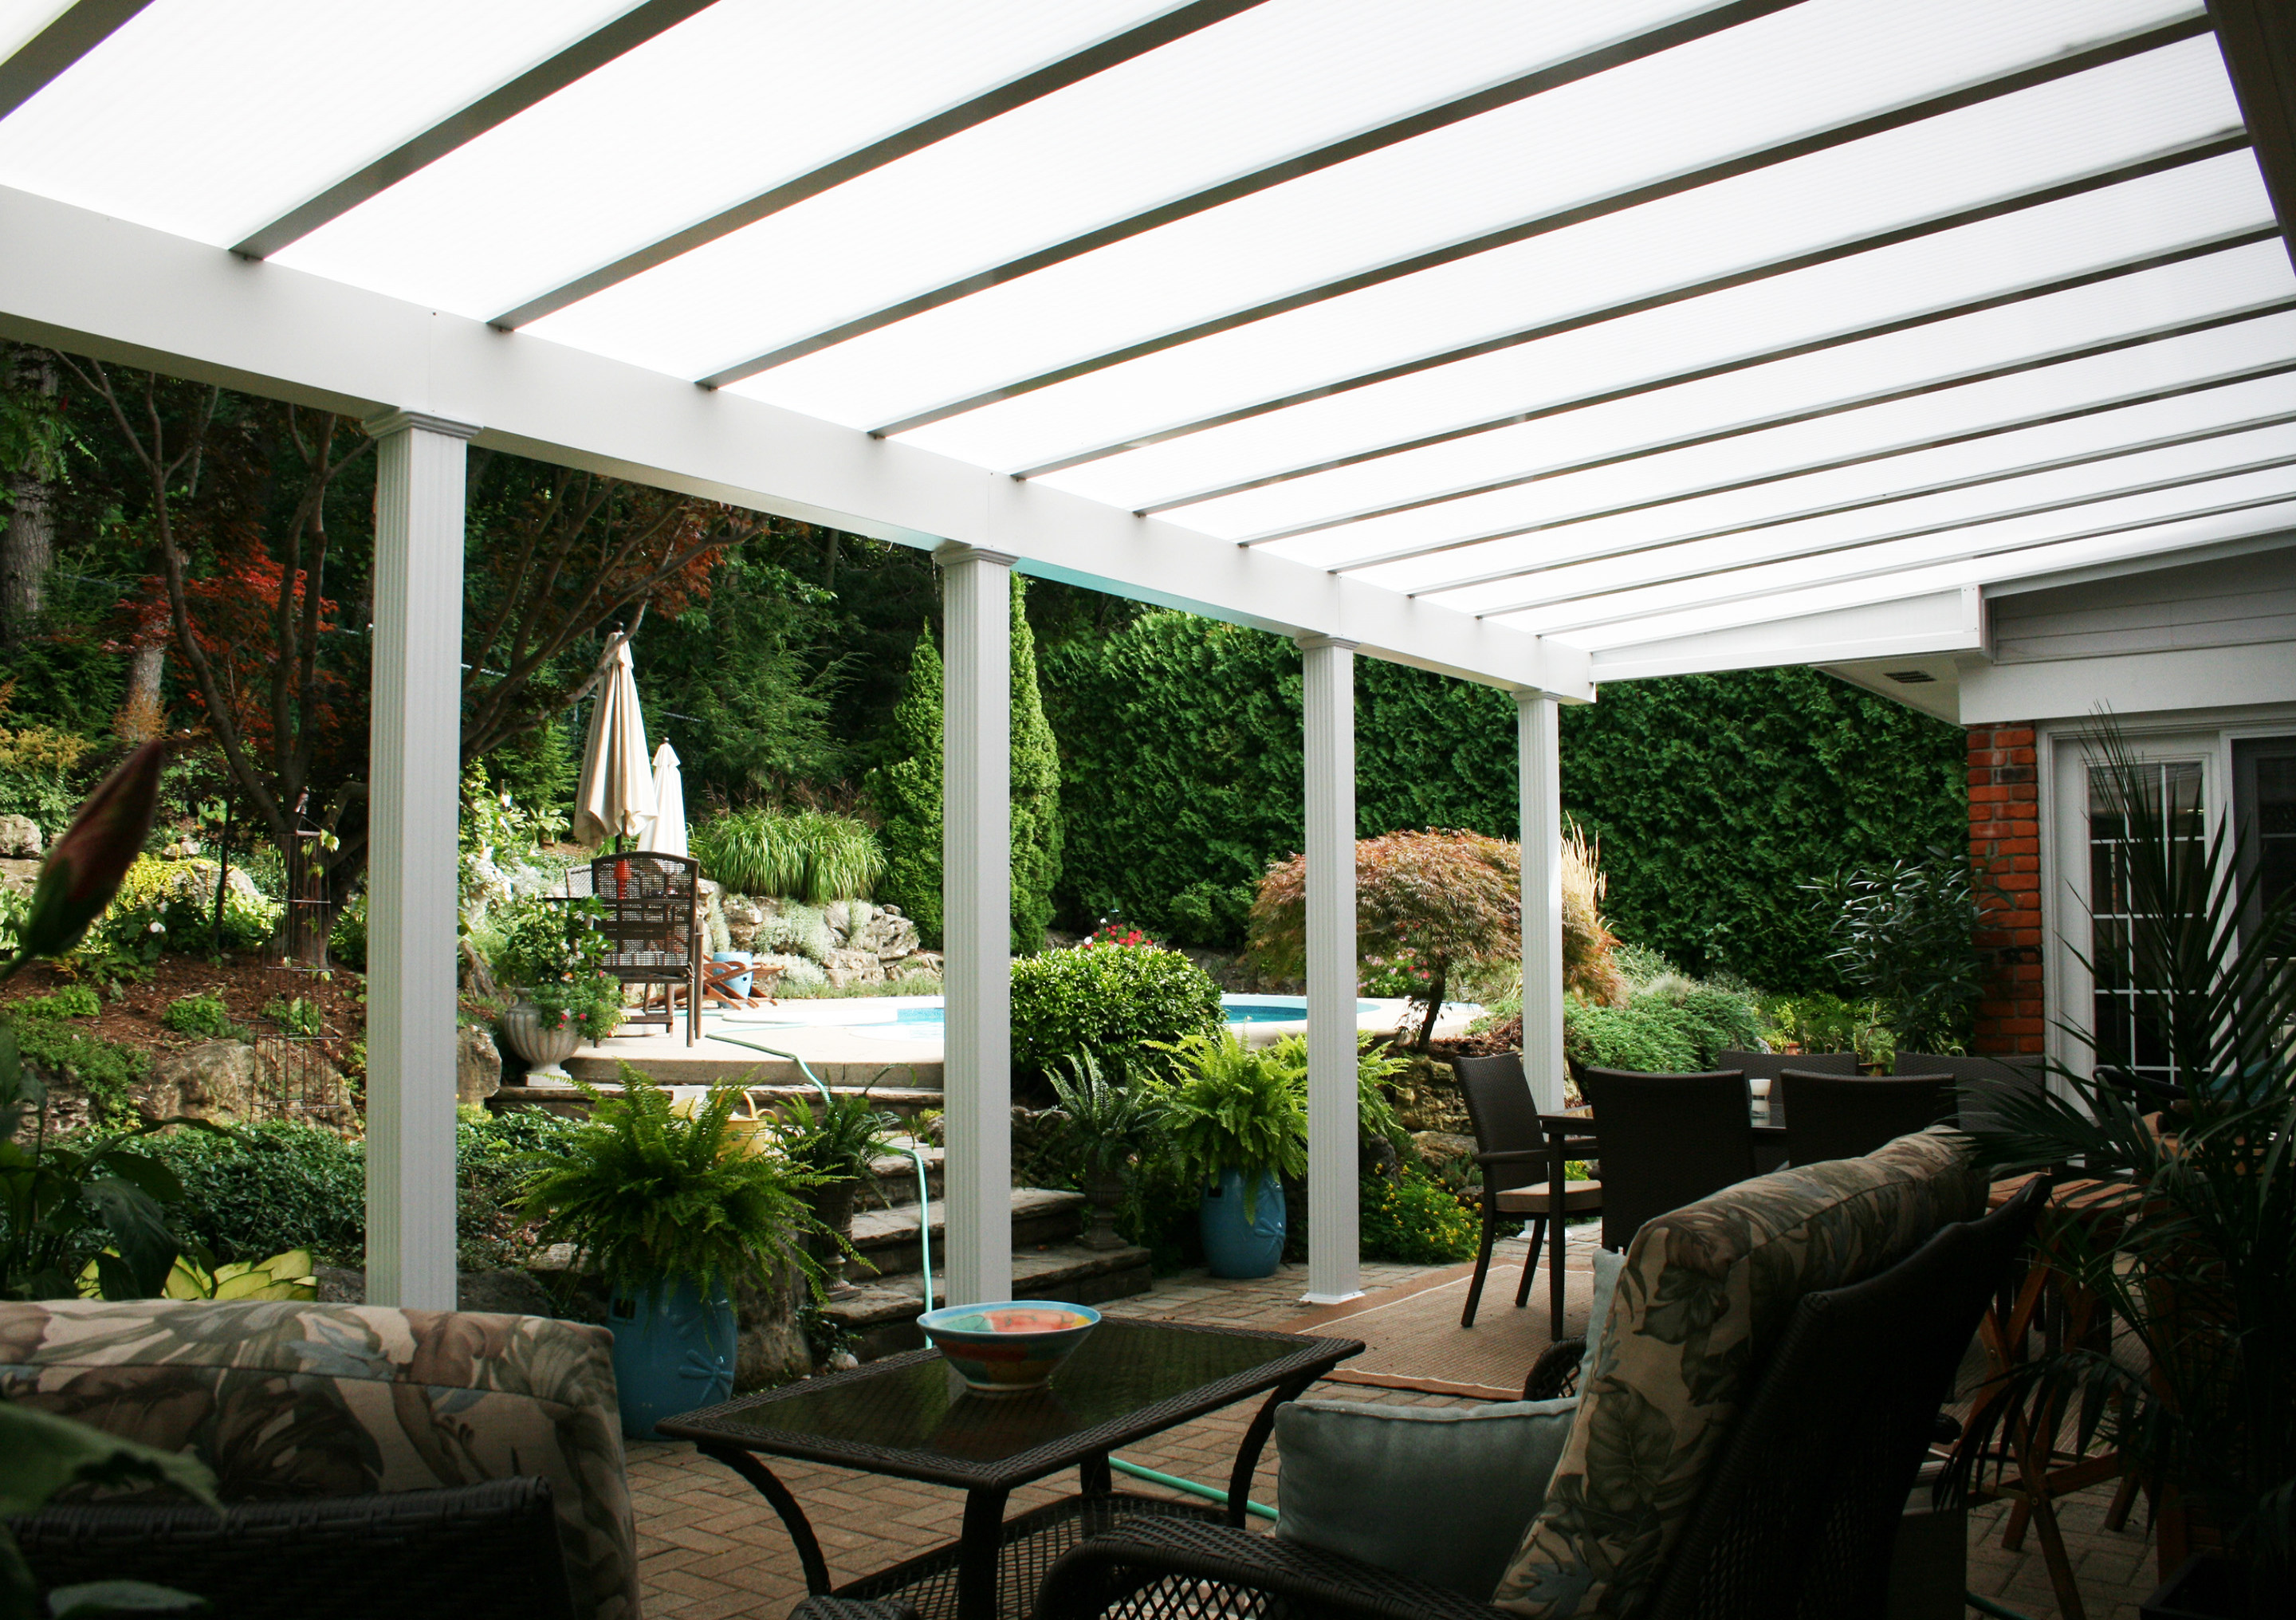 wood frame patio cover, covered patios in Langley, patio covers Abbotsford, Chilliwack patio covers